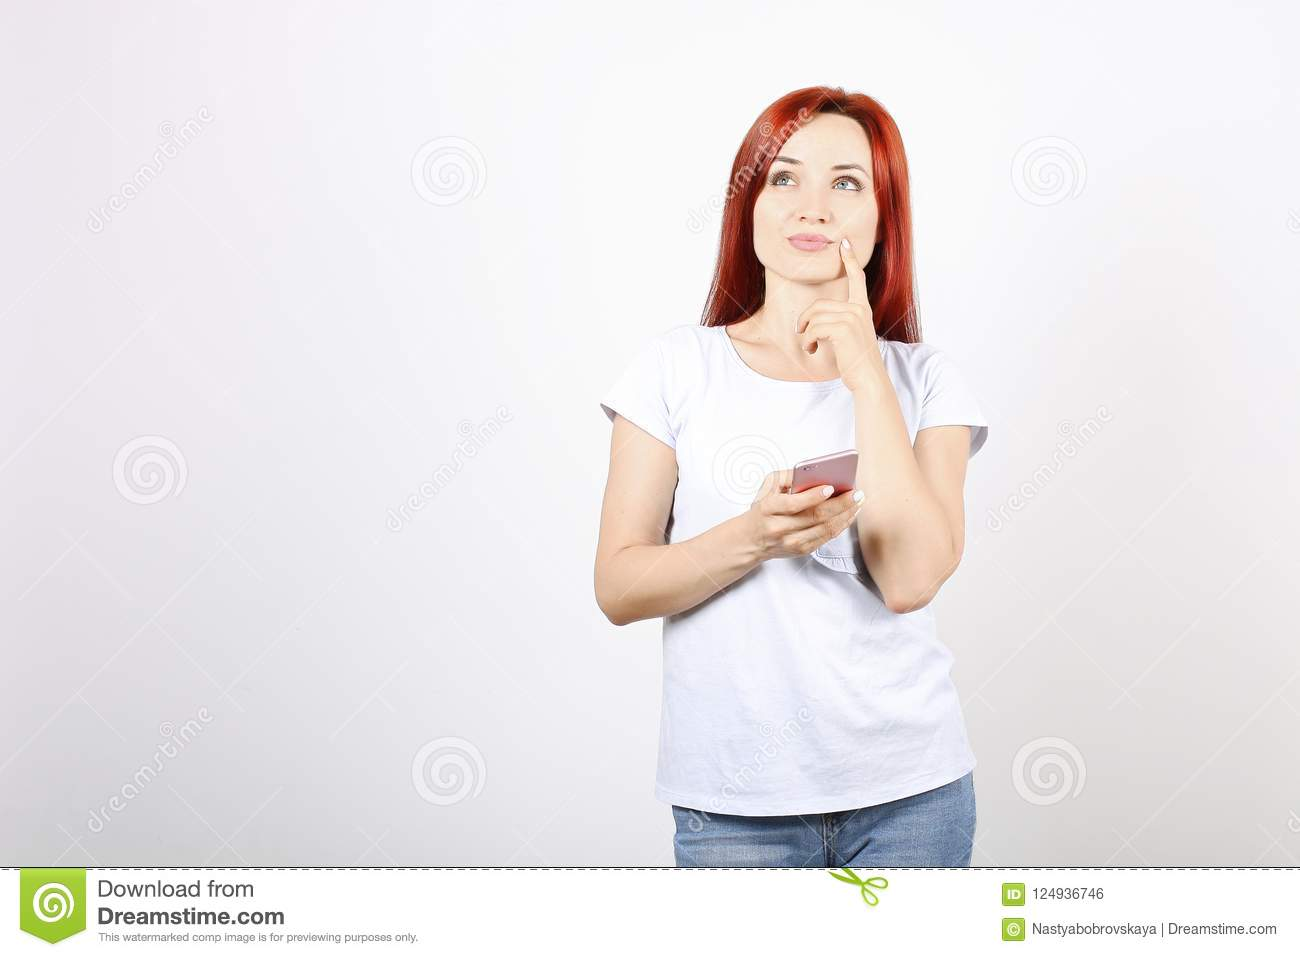 Close up portrait of successful young business woman posing and showing emotions on white background.